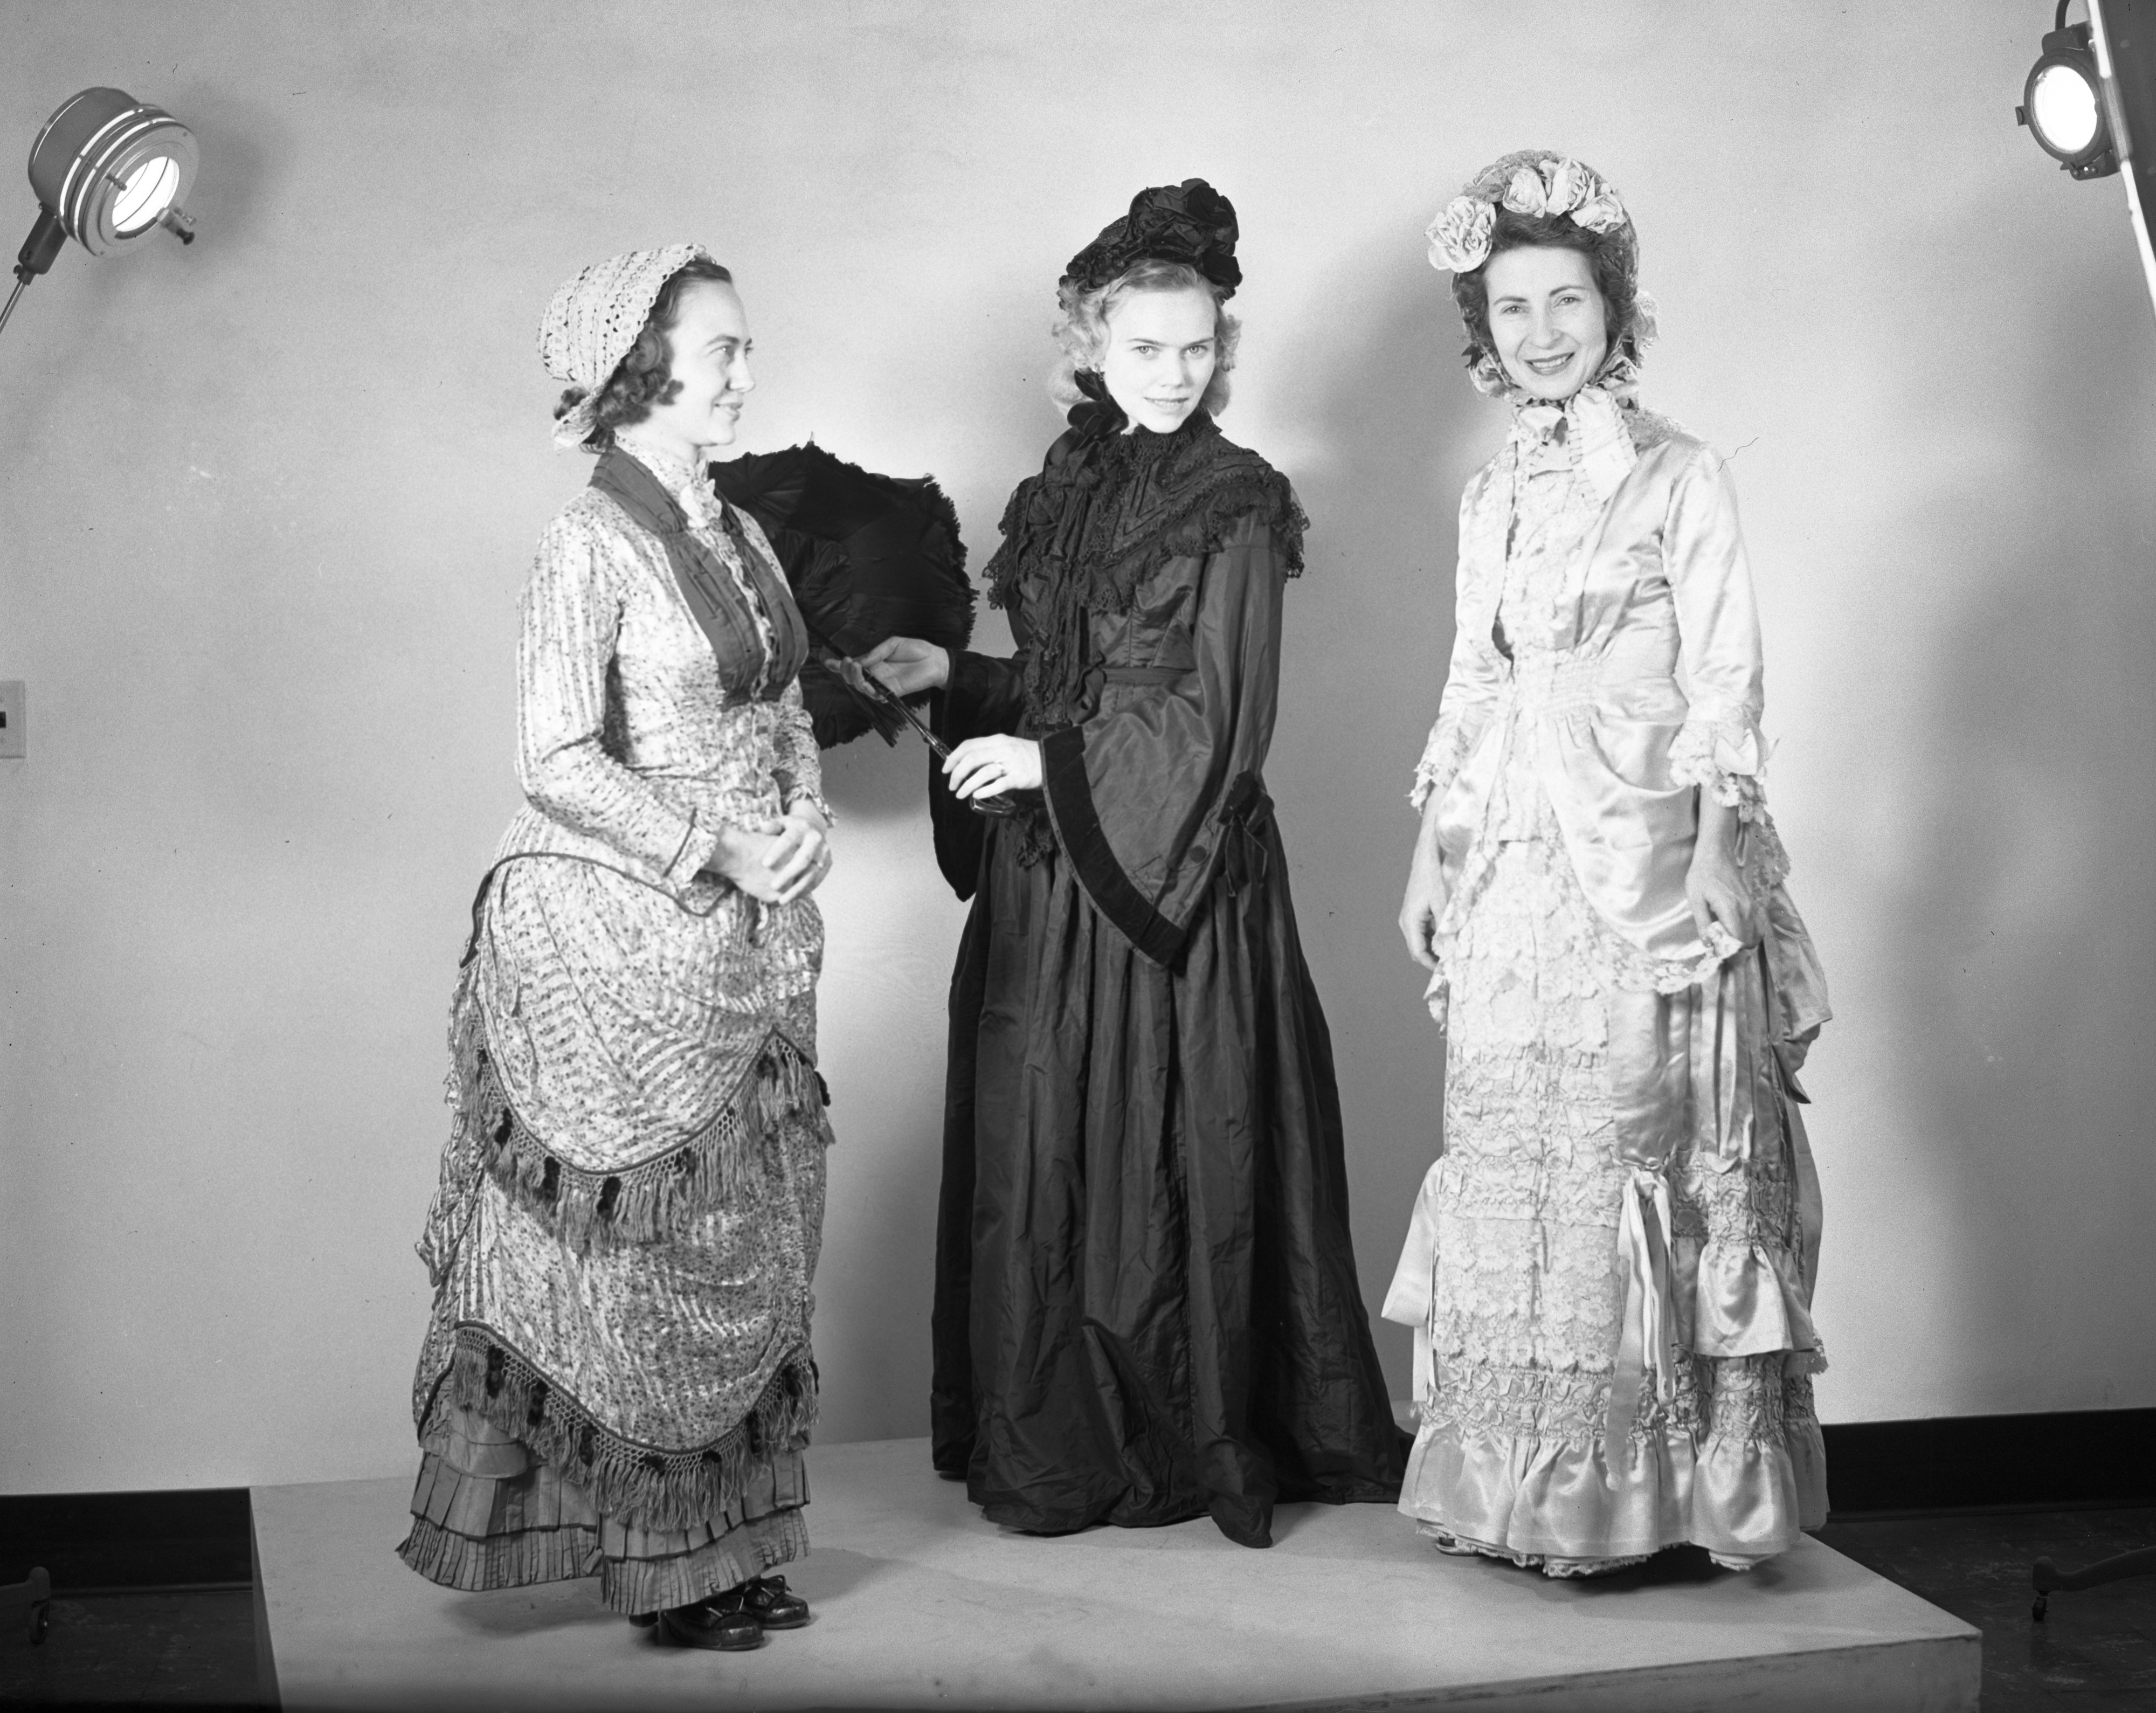 Women in Period Costumes for Congregational Church Bazaar, November 1948 image